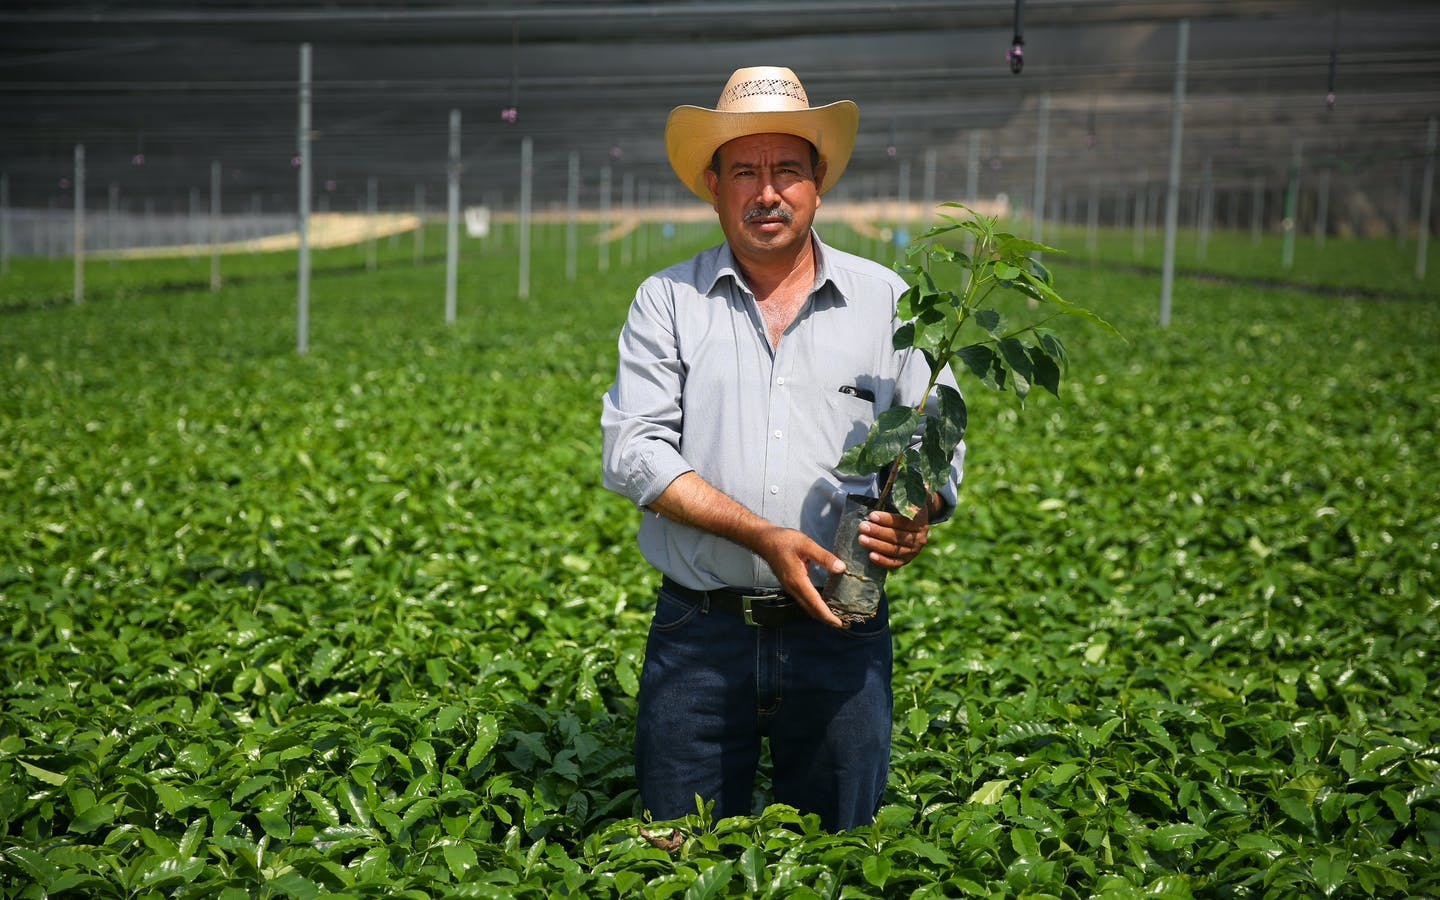 Coffee farmer Martiniano Moreno Alvarado looks at hybrid coffee tree at Jaltenango, Chiapas, Mexico coffee tree nursery.